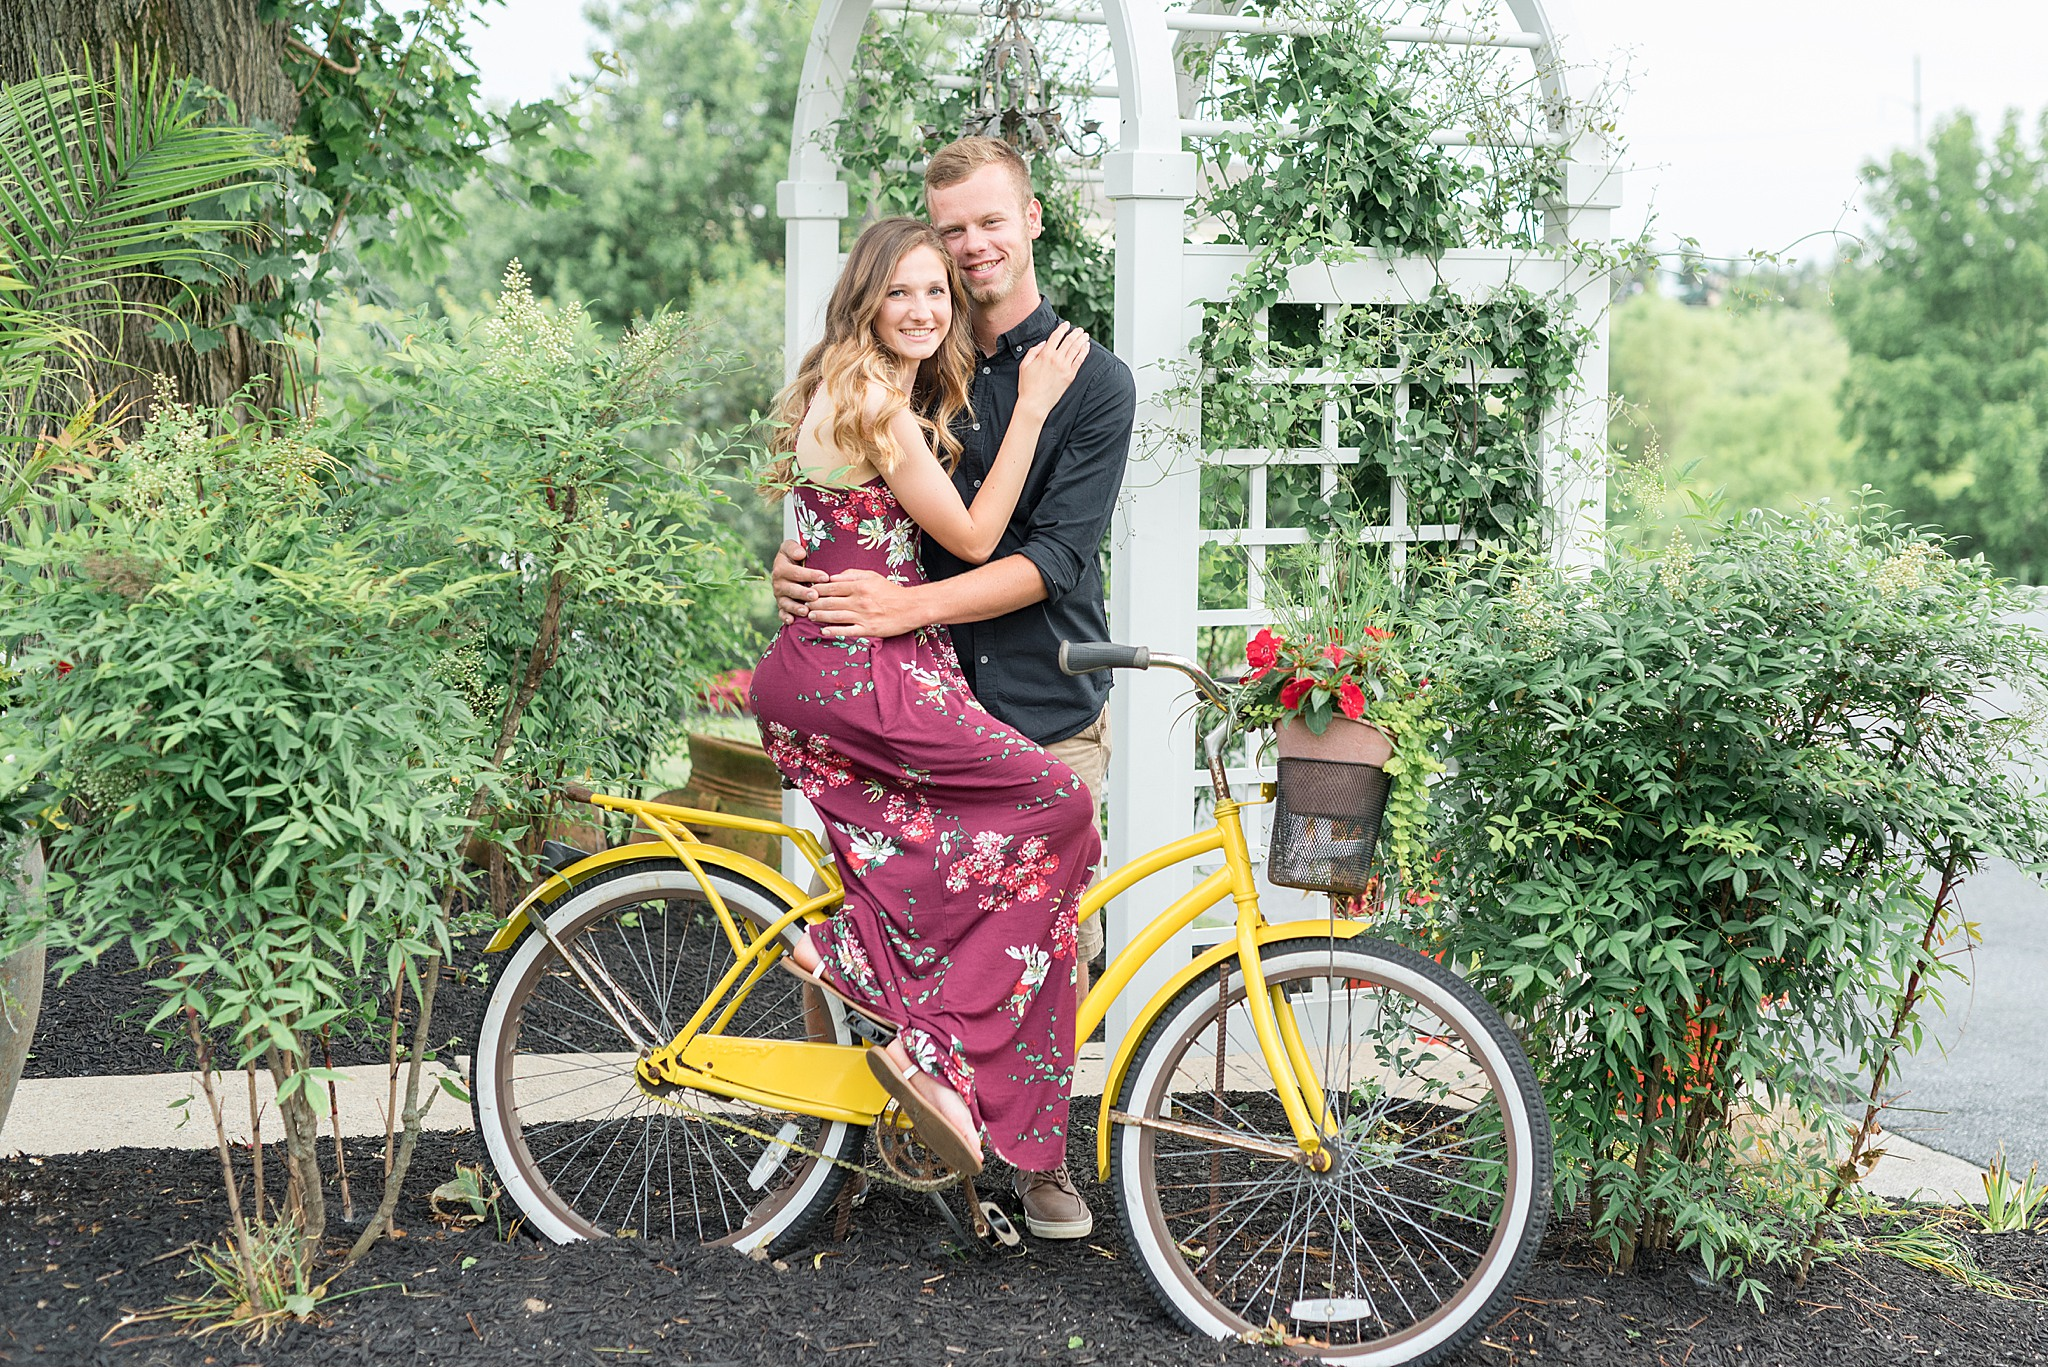 Cedar hollow farm engagement photography bride and groom on yellow bike